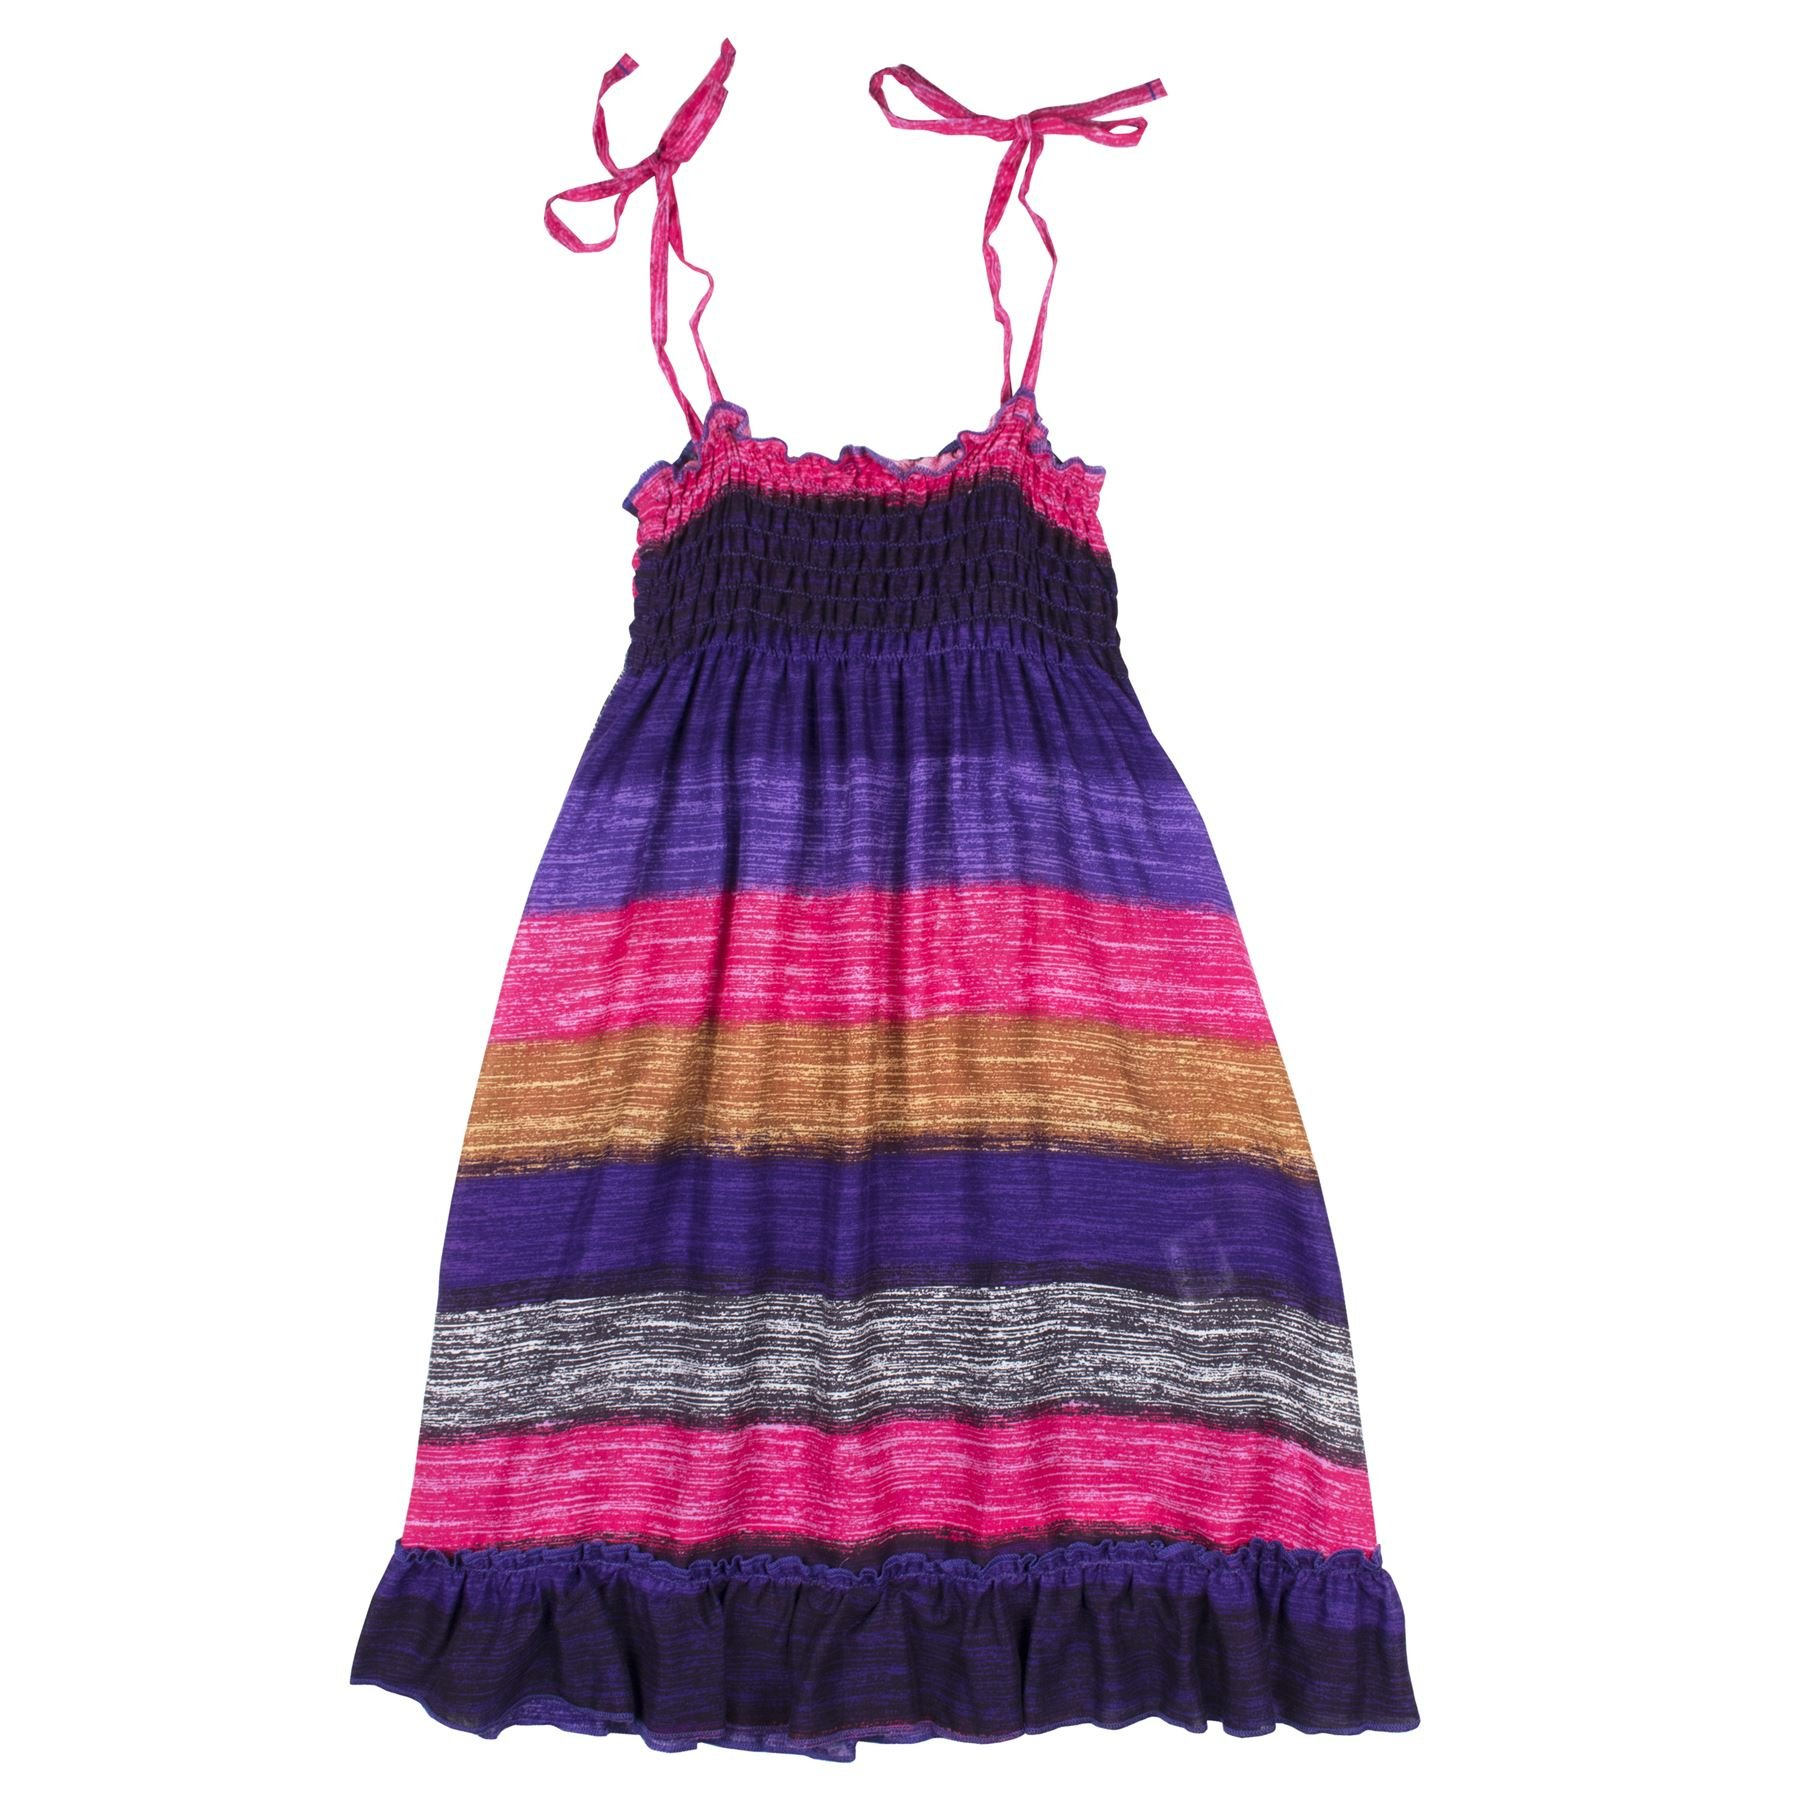 Lofbaz Girls' Long Casual Beach Dress Thick Stripes Peacock 1 Pink 4/5Y